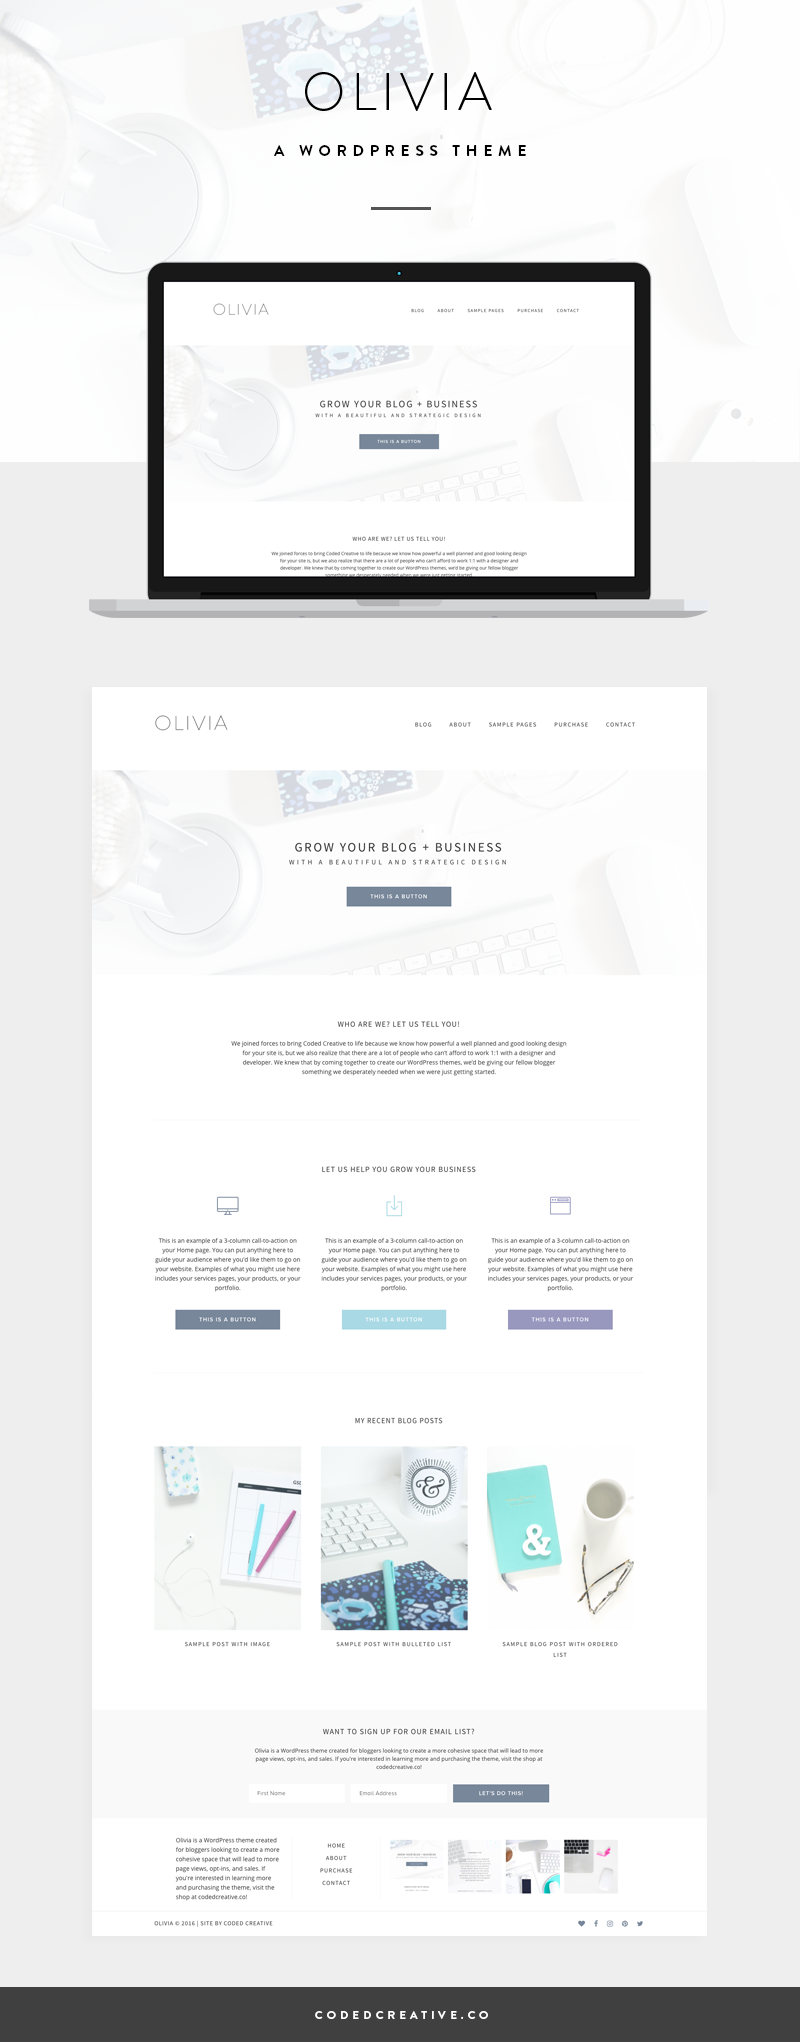 Olivia is a simple website and blogging template created for the WordPress platform. It was created for business owners looking to create a more cohesive space that will lead to more page views, opt-ins, and sales.